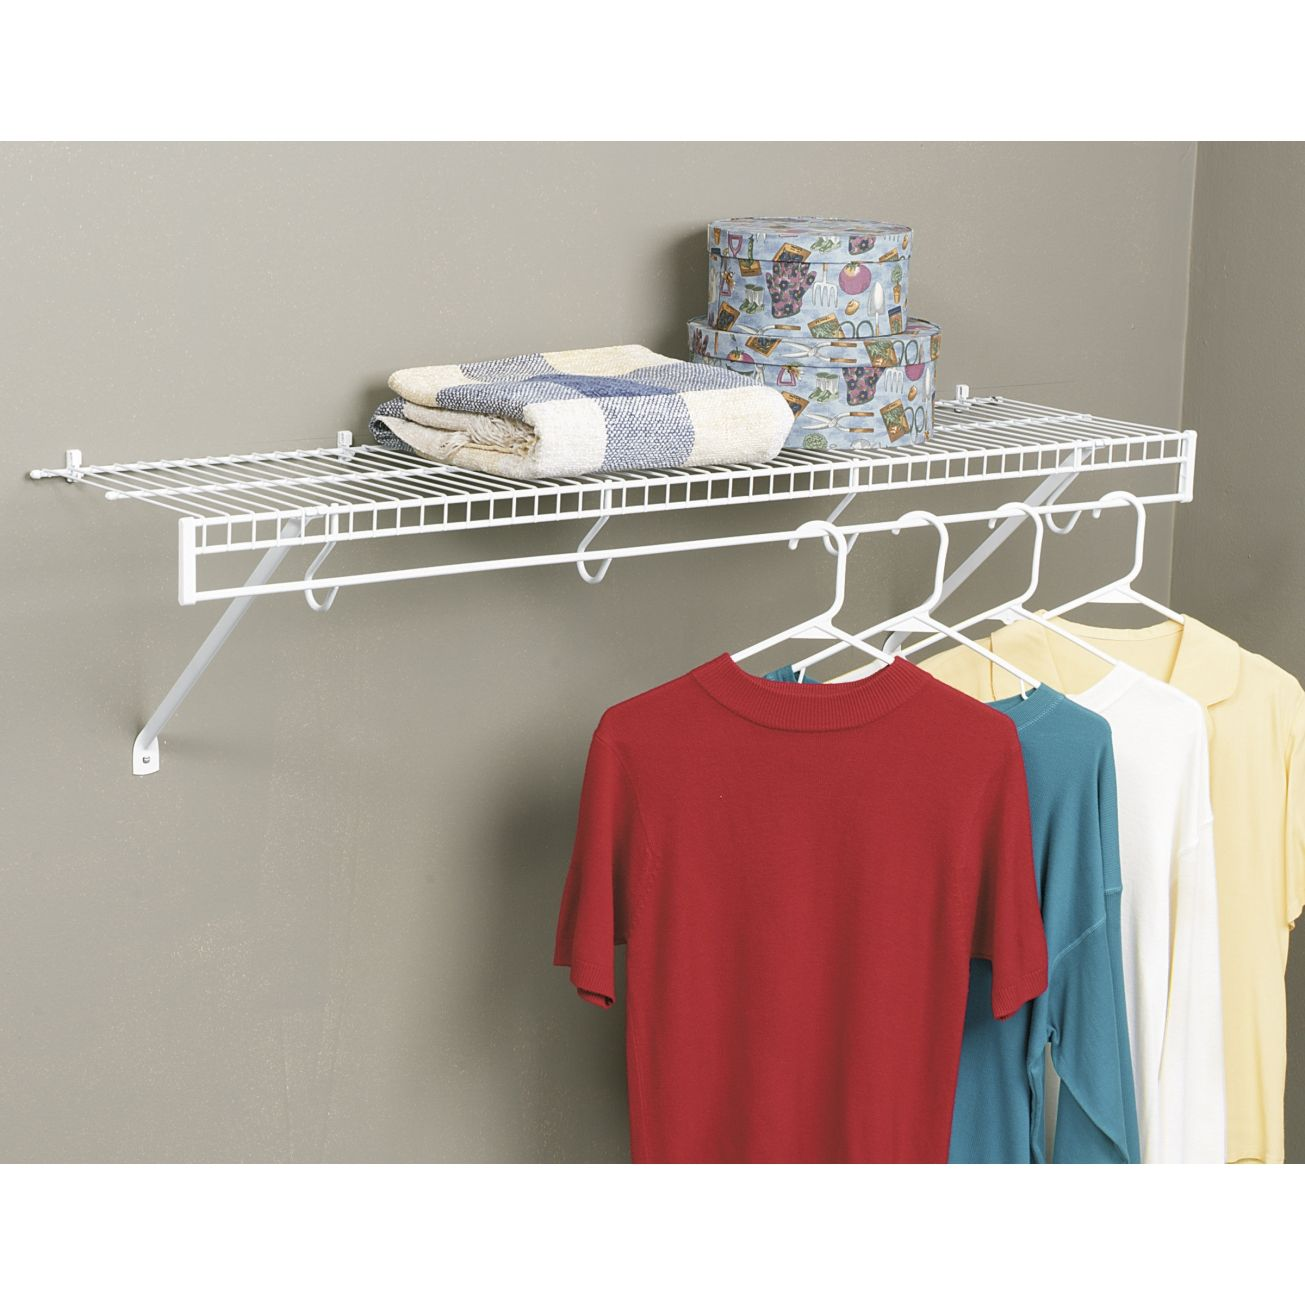 Organizational Hardware Rubbermaid Free Slide Shelf Kit 3d4800wht Wall Shelf Kits Diy Clothes Rack Wall Mounted Wire Shelving Wooden Clothes Drying Rack